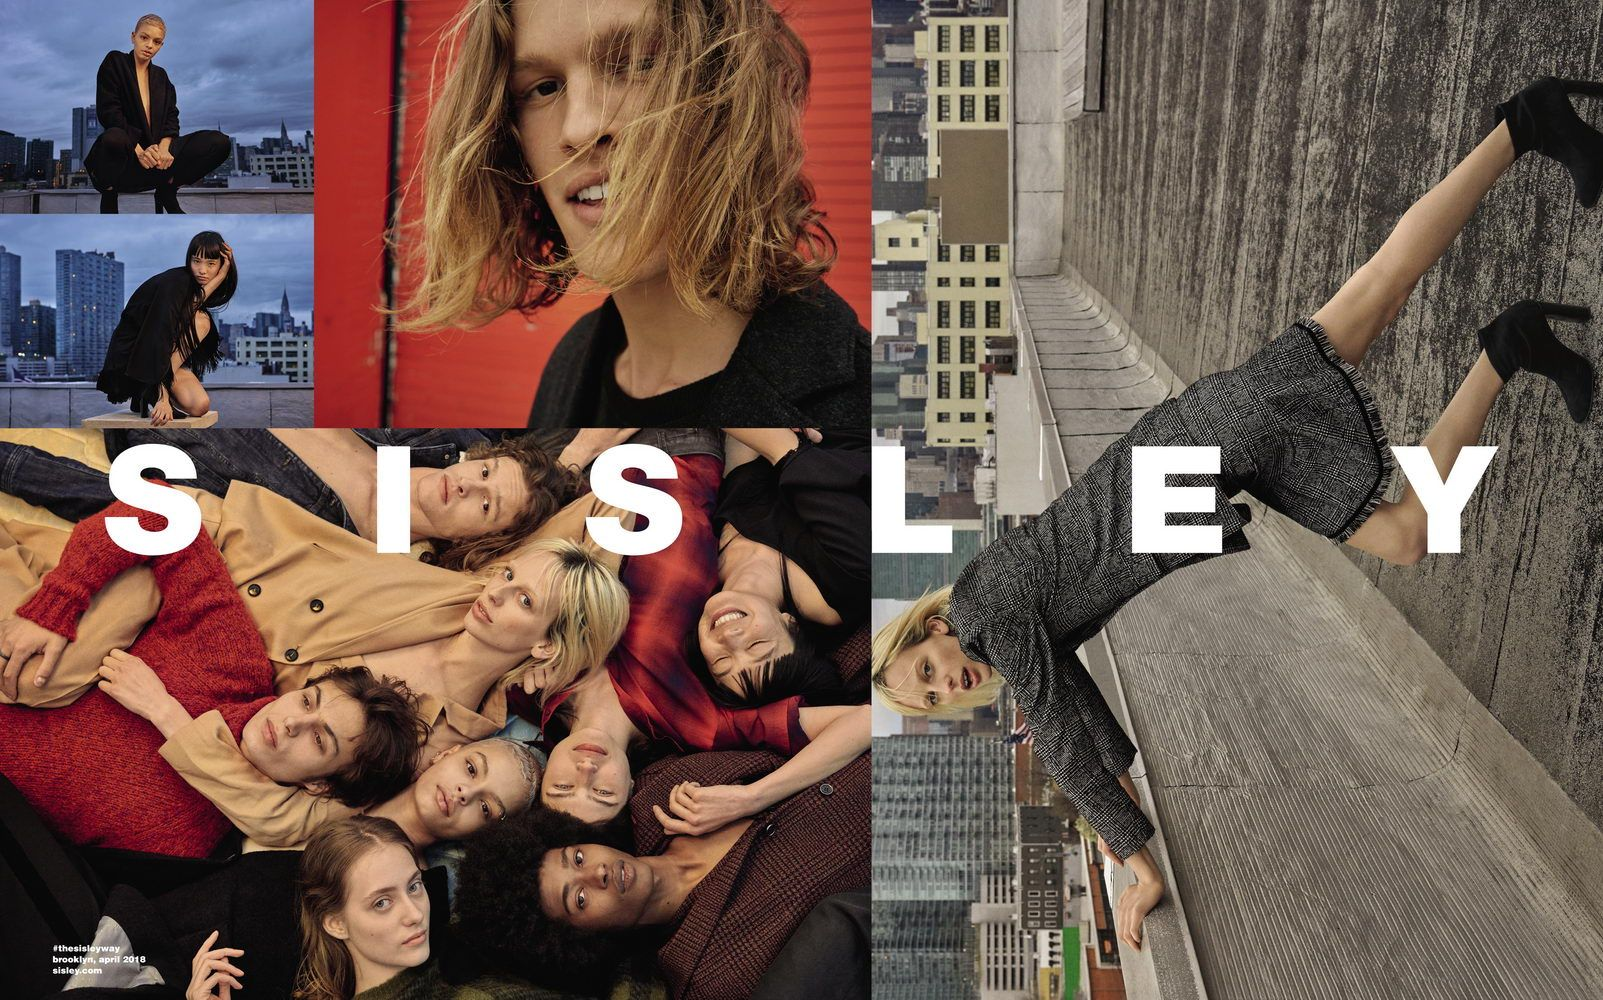 Sisley_FW18 Advertising Campaign_3_resize